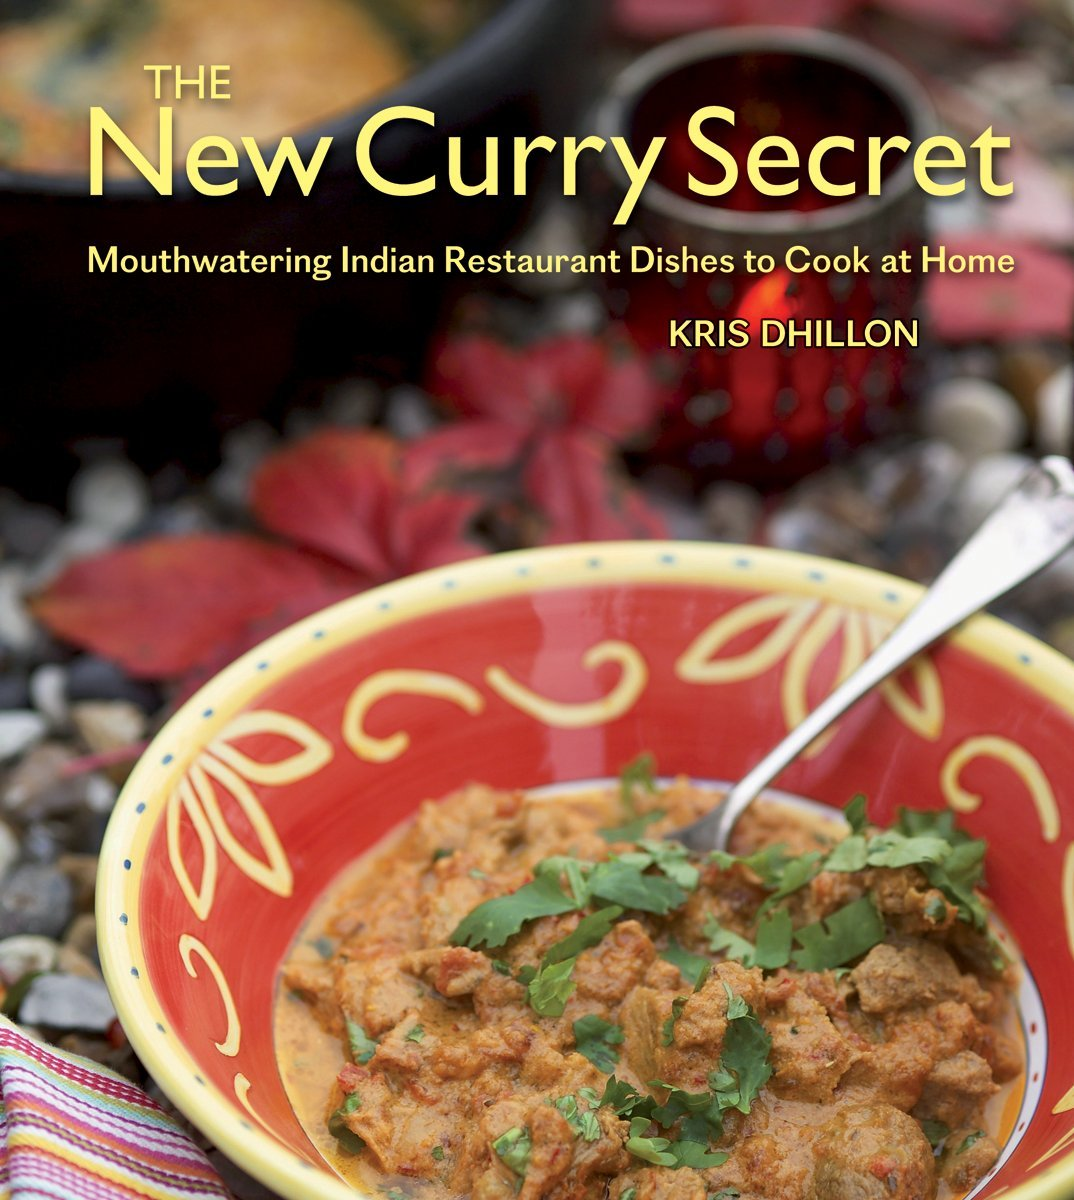 The new curry secret mouthwatering indian restaurant dishes to cook the new curry secret mouthwatering indian restaurant dishes to cook at home kris dhillon 9781554075614 amazon books forumfinder Image collections